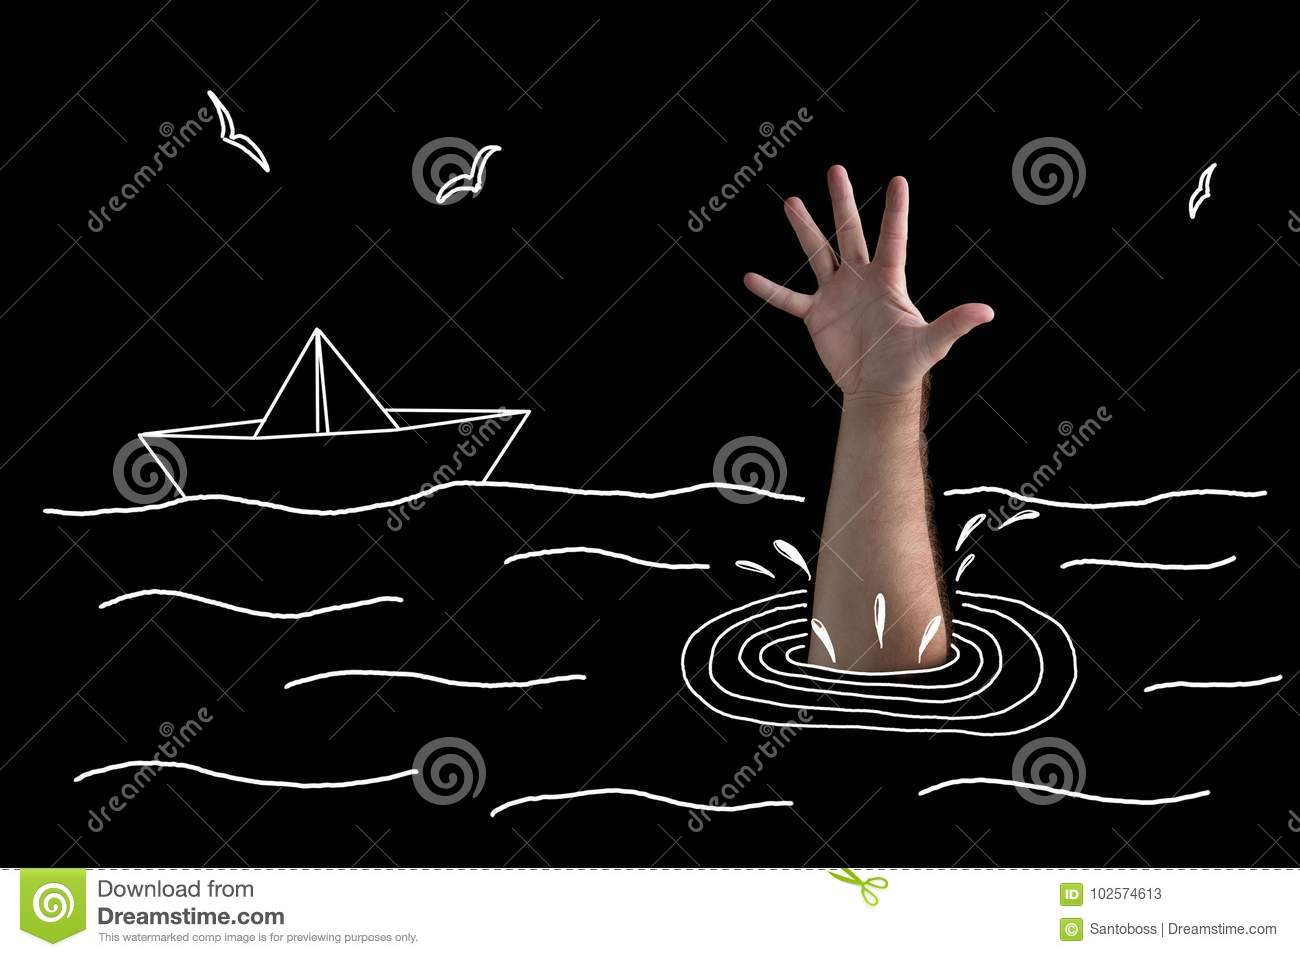 Hand of a sinking man in black water